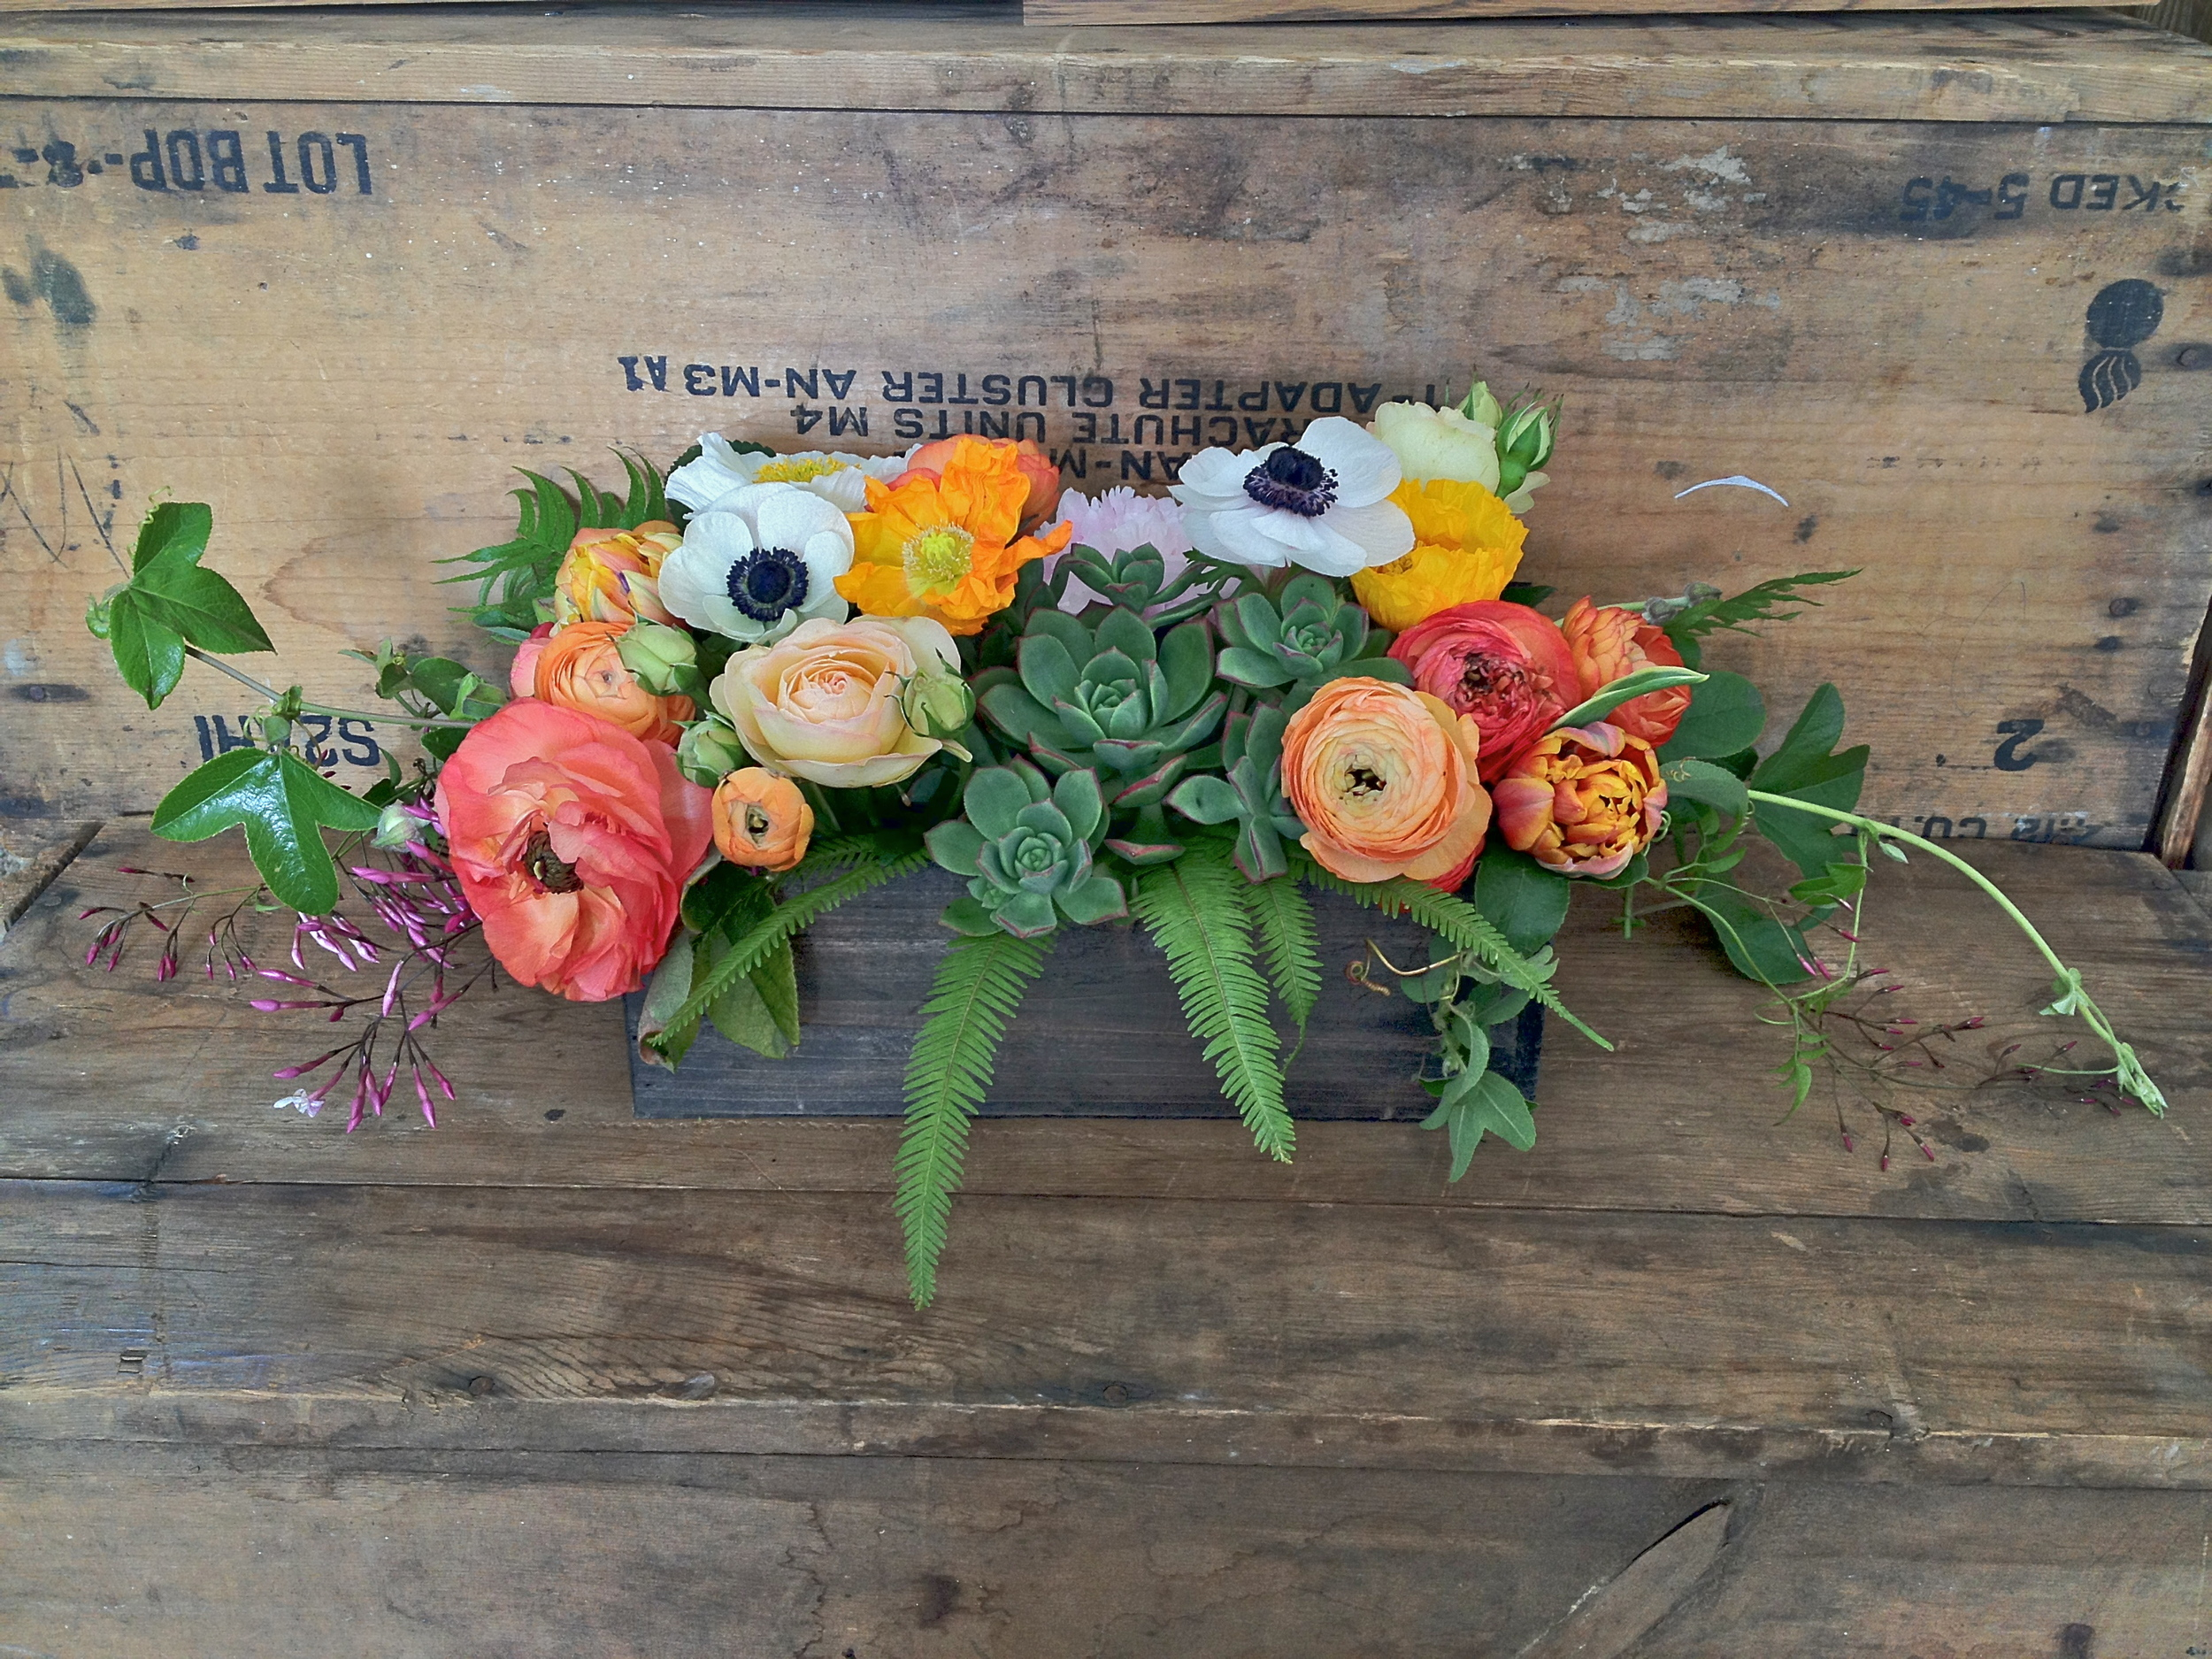 These bright and lush centerpieces were arranged in rustic wood boxes. The end result was beautiful, romantic, laid back, and natural.